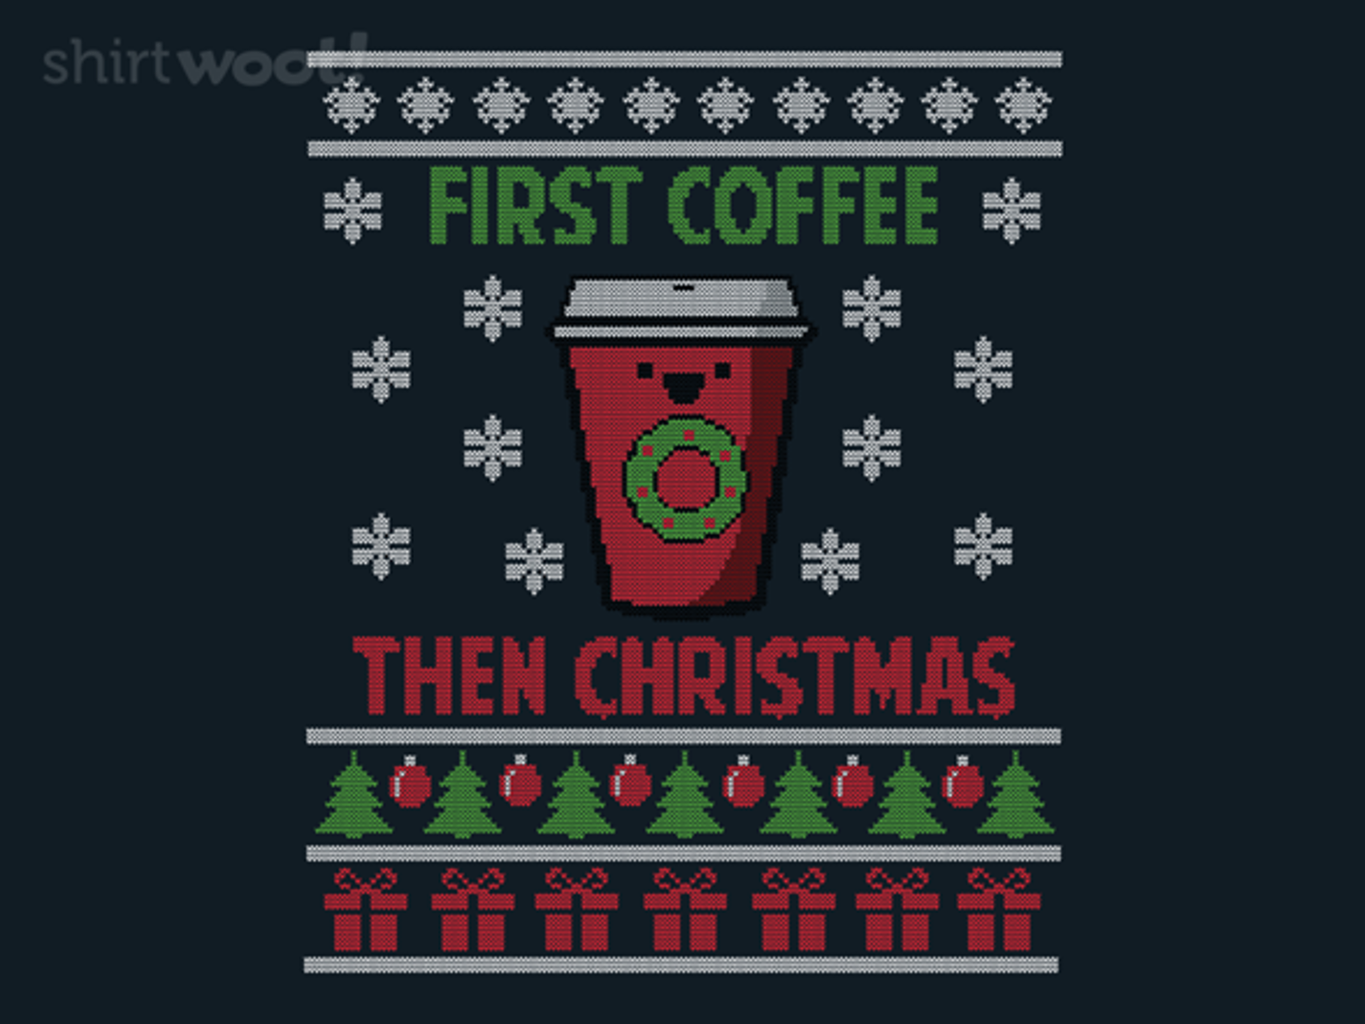 Woot!: First Coffee